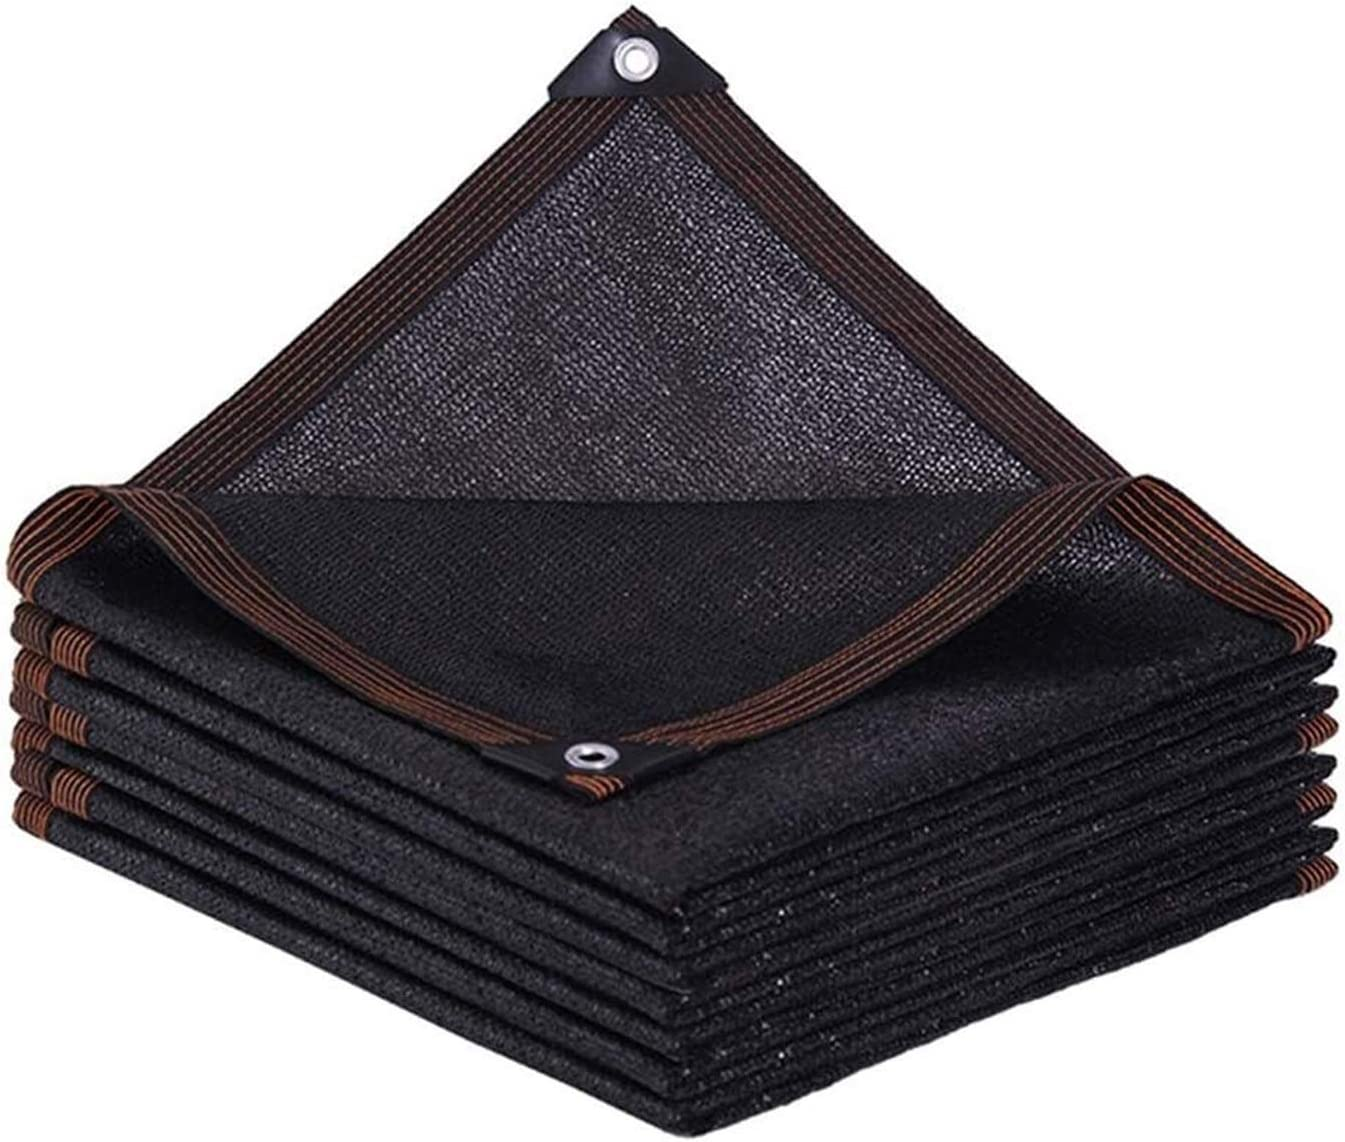 TYHZ Shade Year-end annual account Cloth Max 81% OFF Black 95% Plants Green for Sunblock